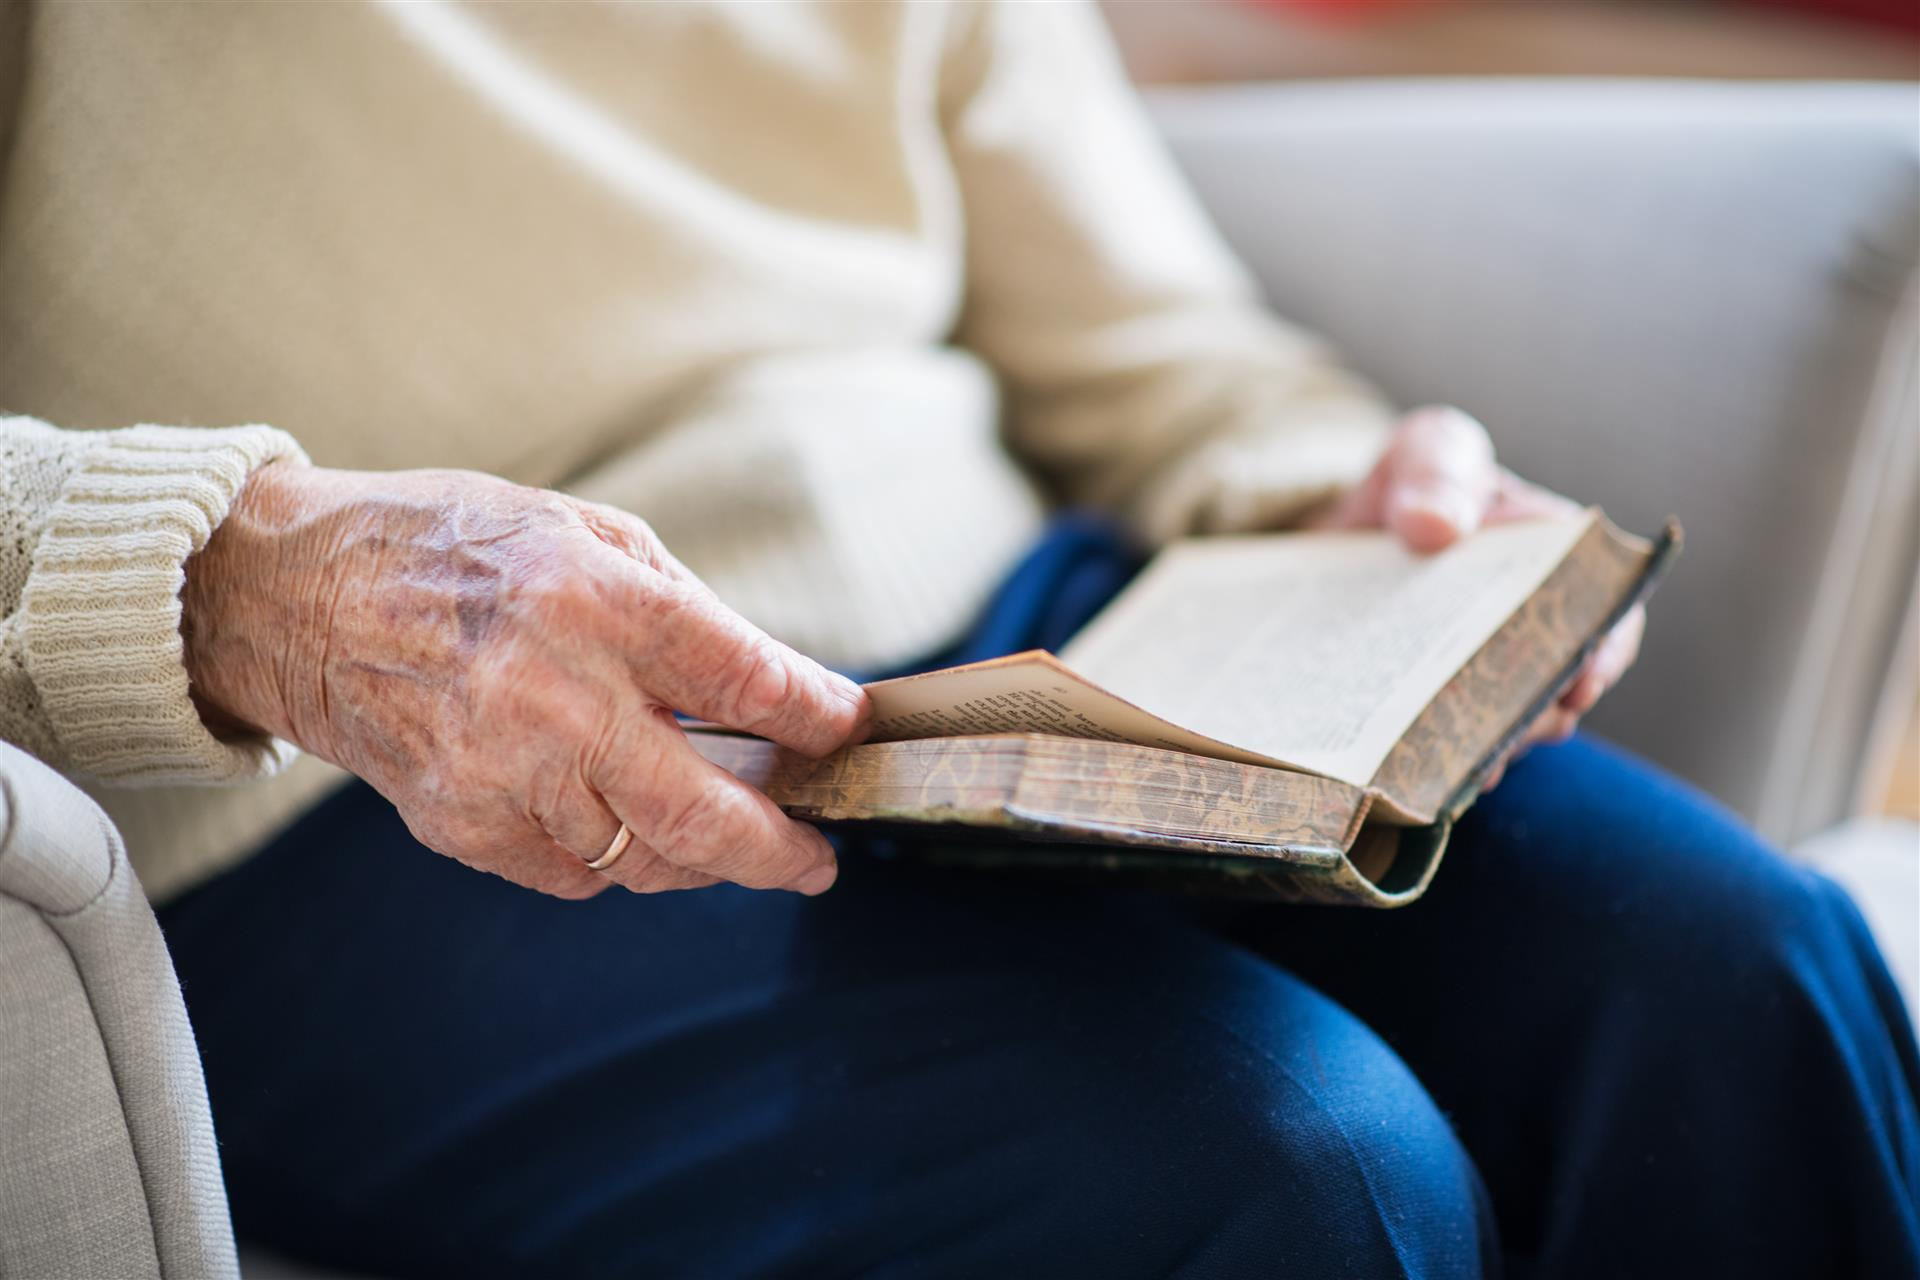 Turning to the Bible When You Feel Alone